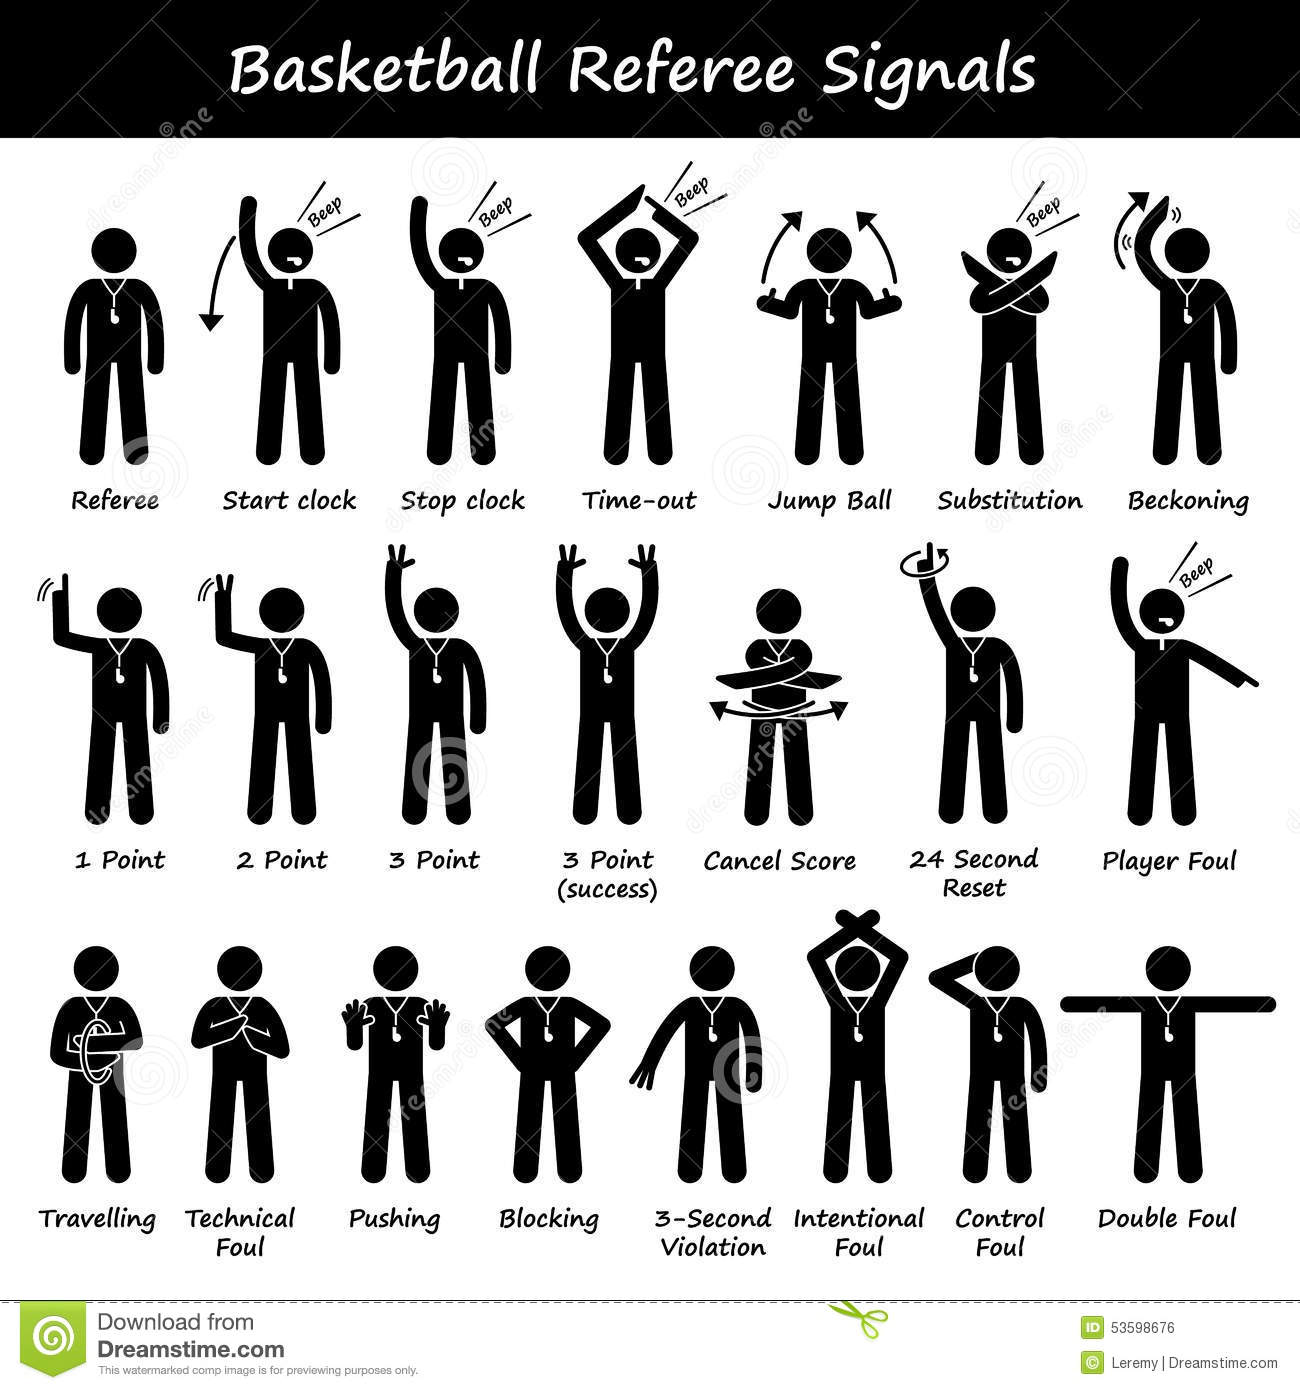 ... set of basketball referee hand signals for the basketball game